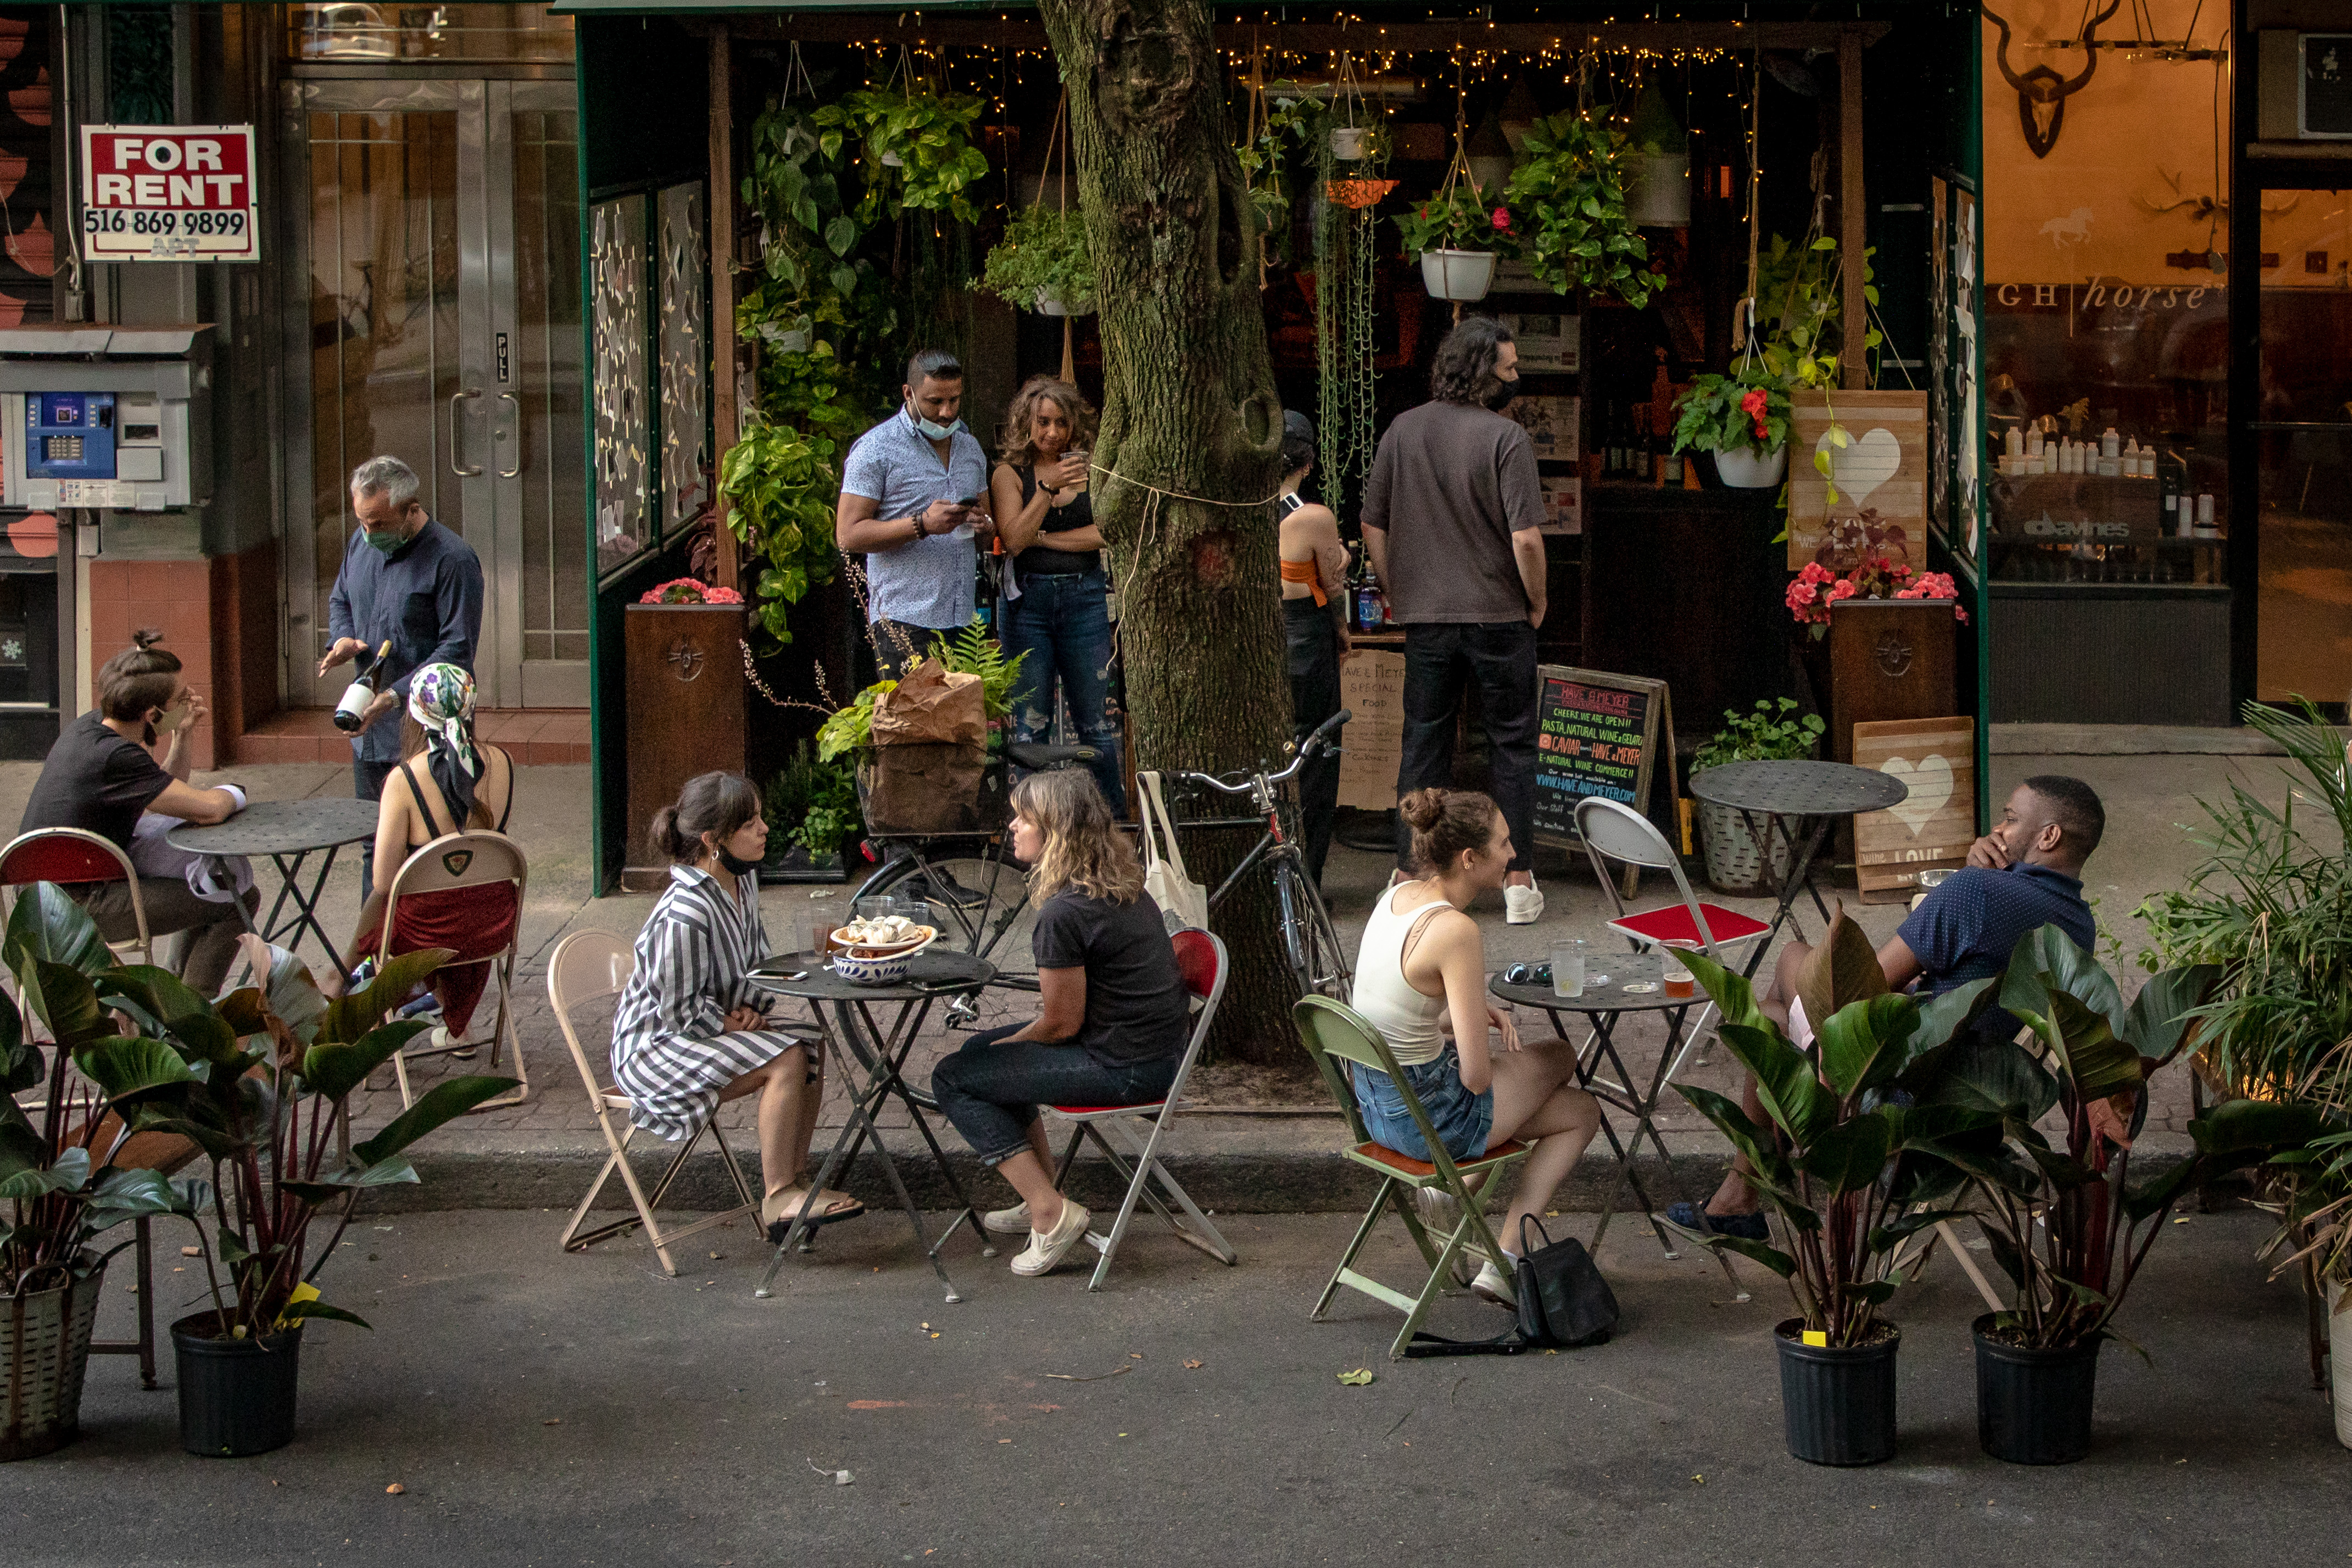 Customers dine at outdoor tables at Have & Meyer